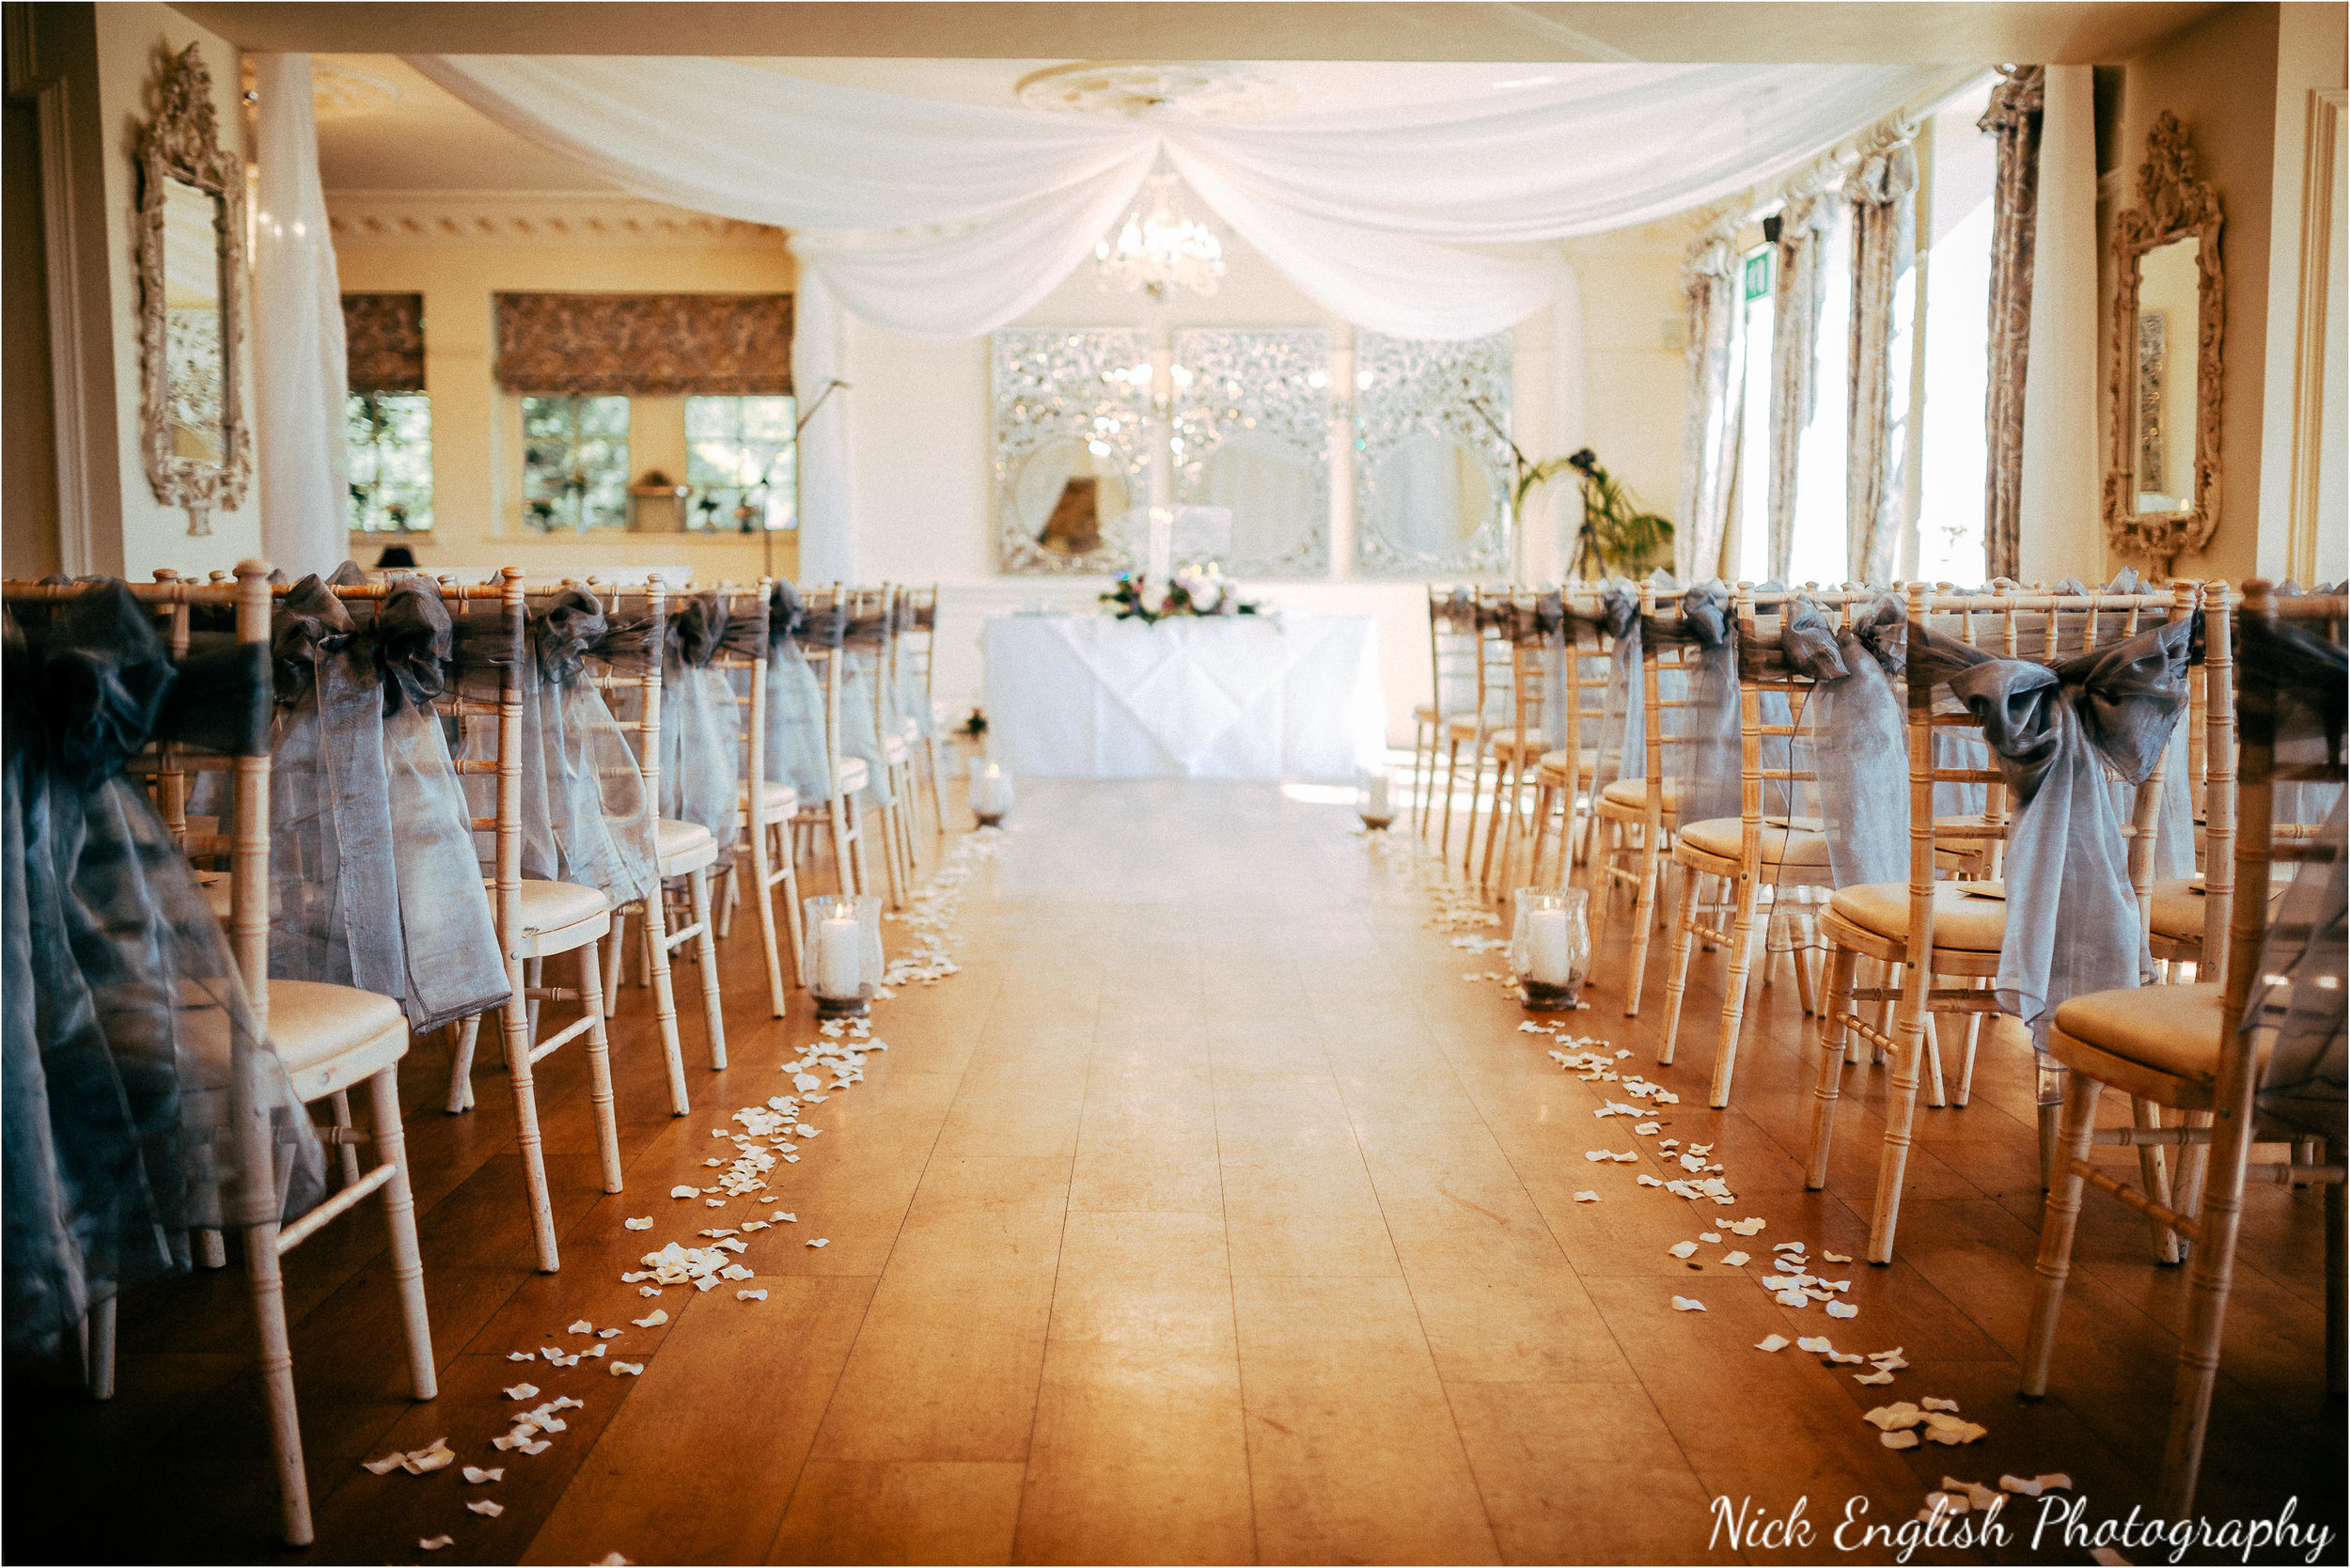 Eaves_Hall_Wedding_Photographs_Nick_English_Photography-75.jpg